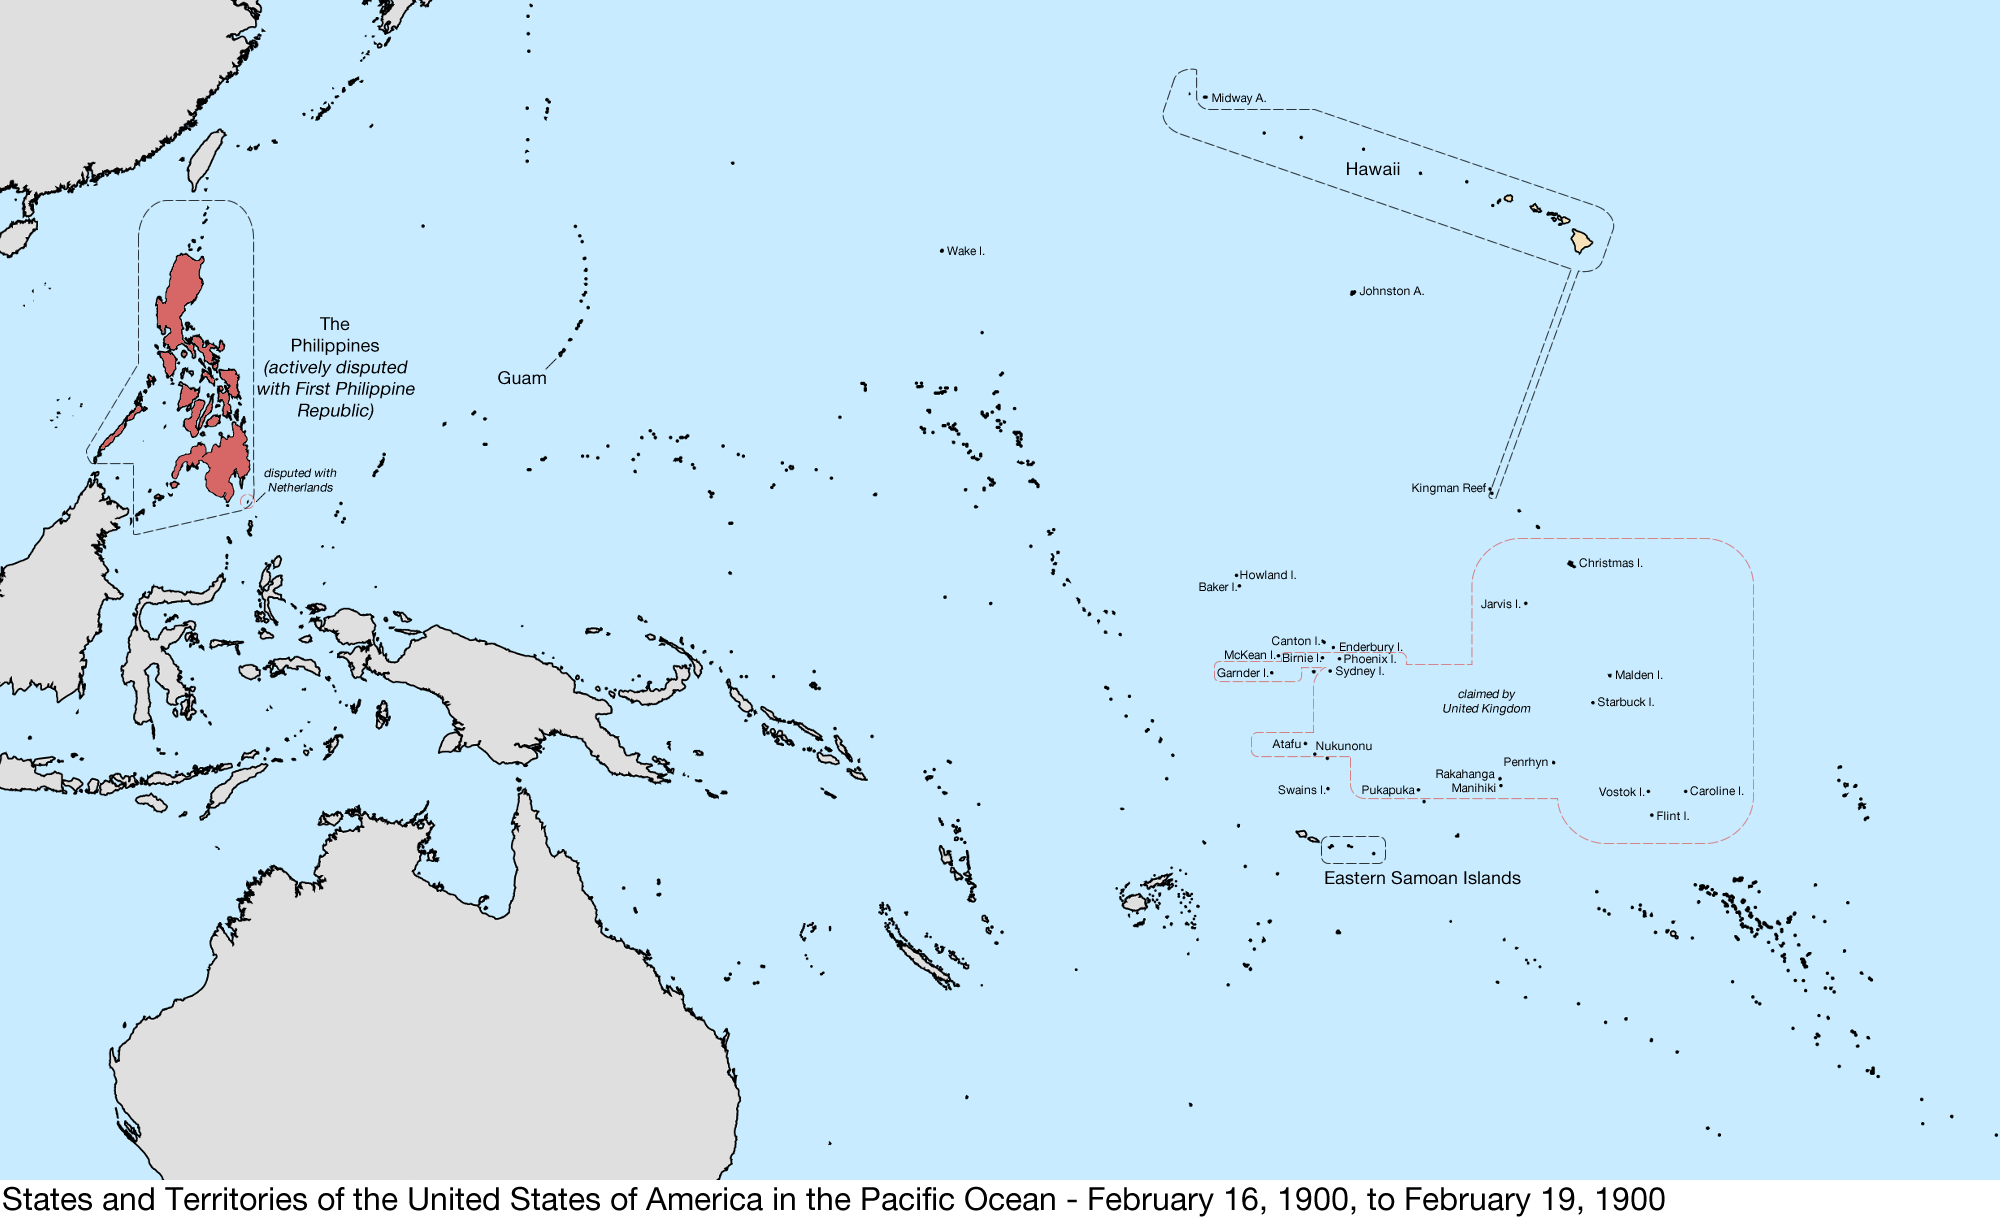 Fileunited States Pacific Map 1900 02 16 To 1900 02 19png - Pacific-us-map